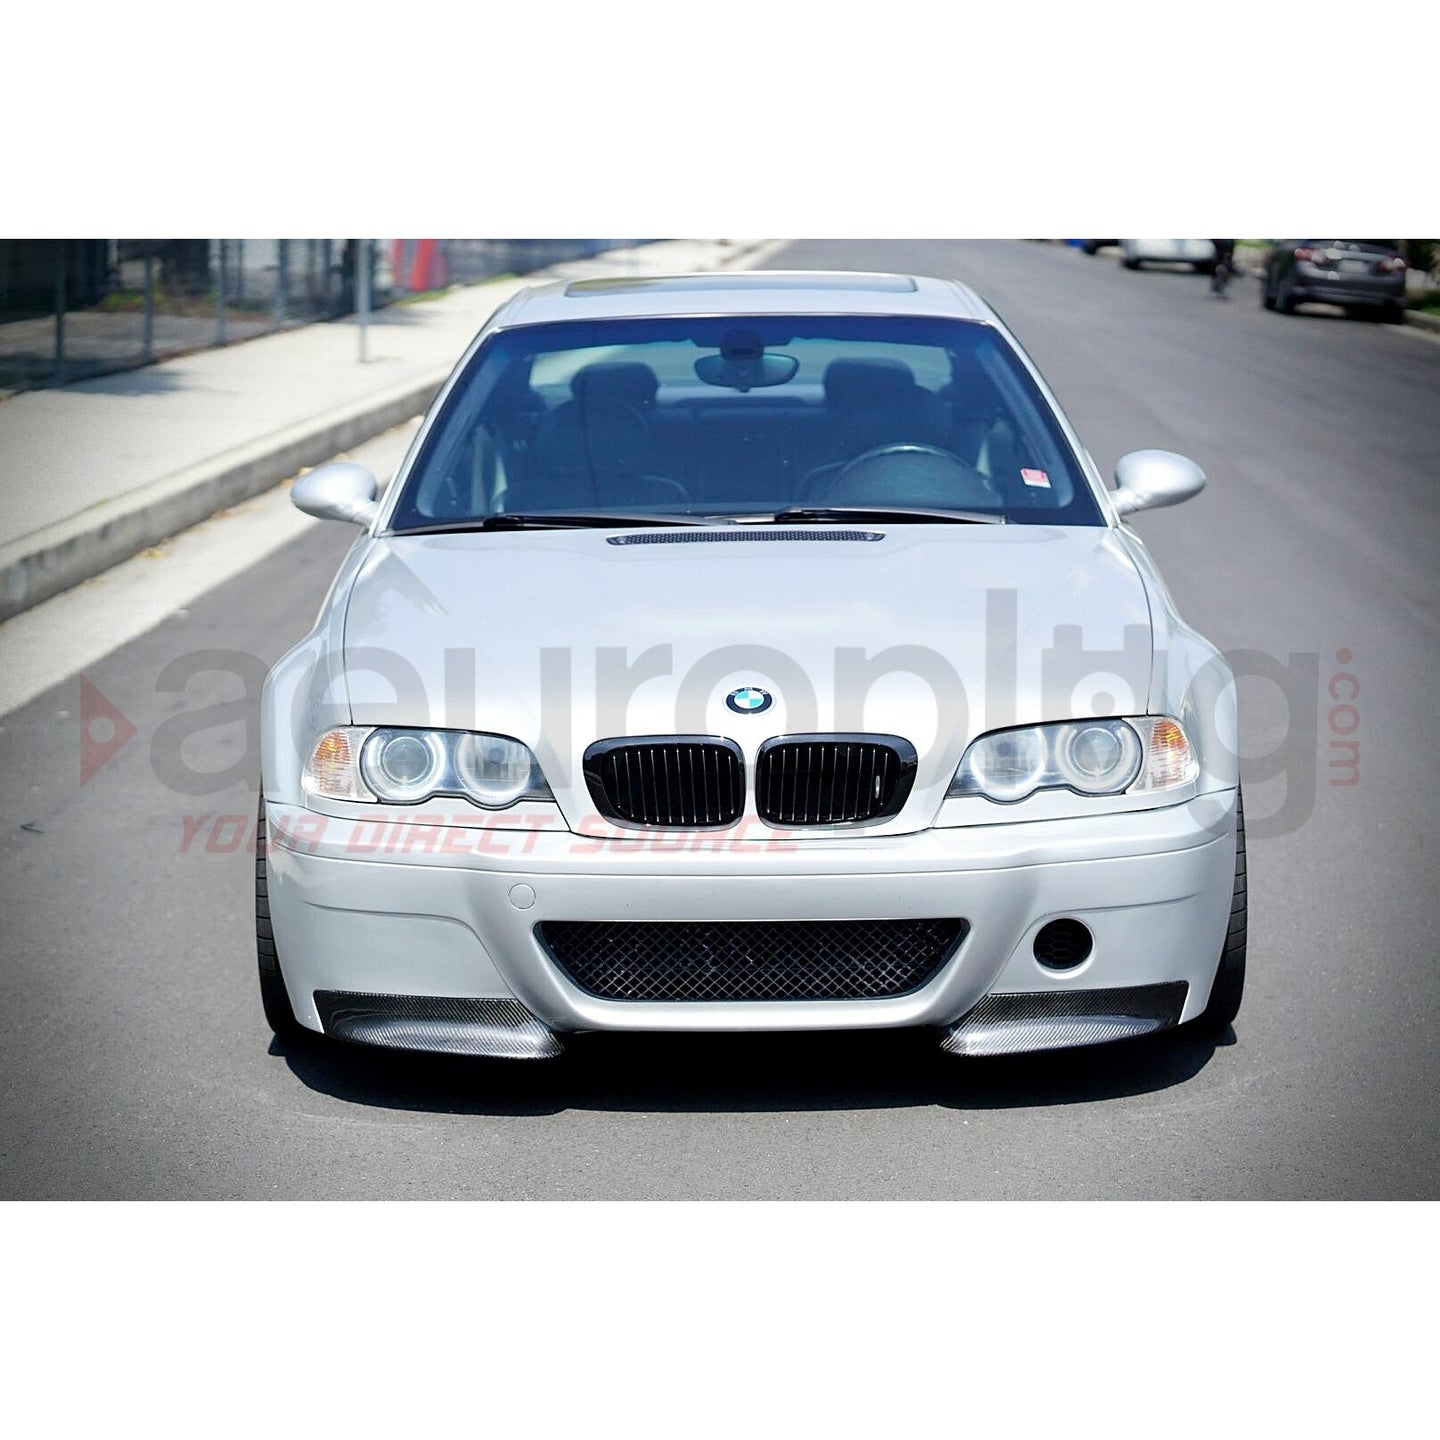 bmw e46 m3 csl replacement carbon fiber splitters for csl. Black Bedroom Furniture Sets. Home Design Ideas